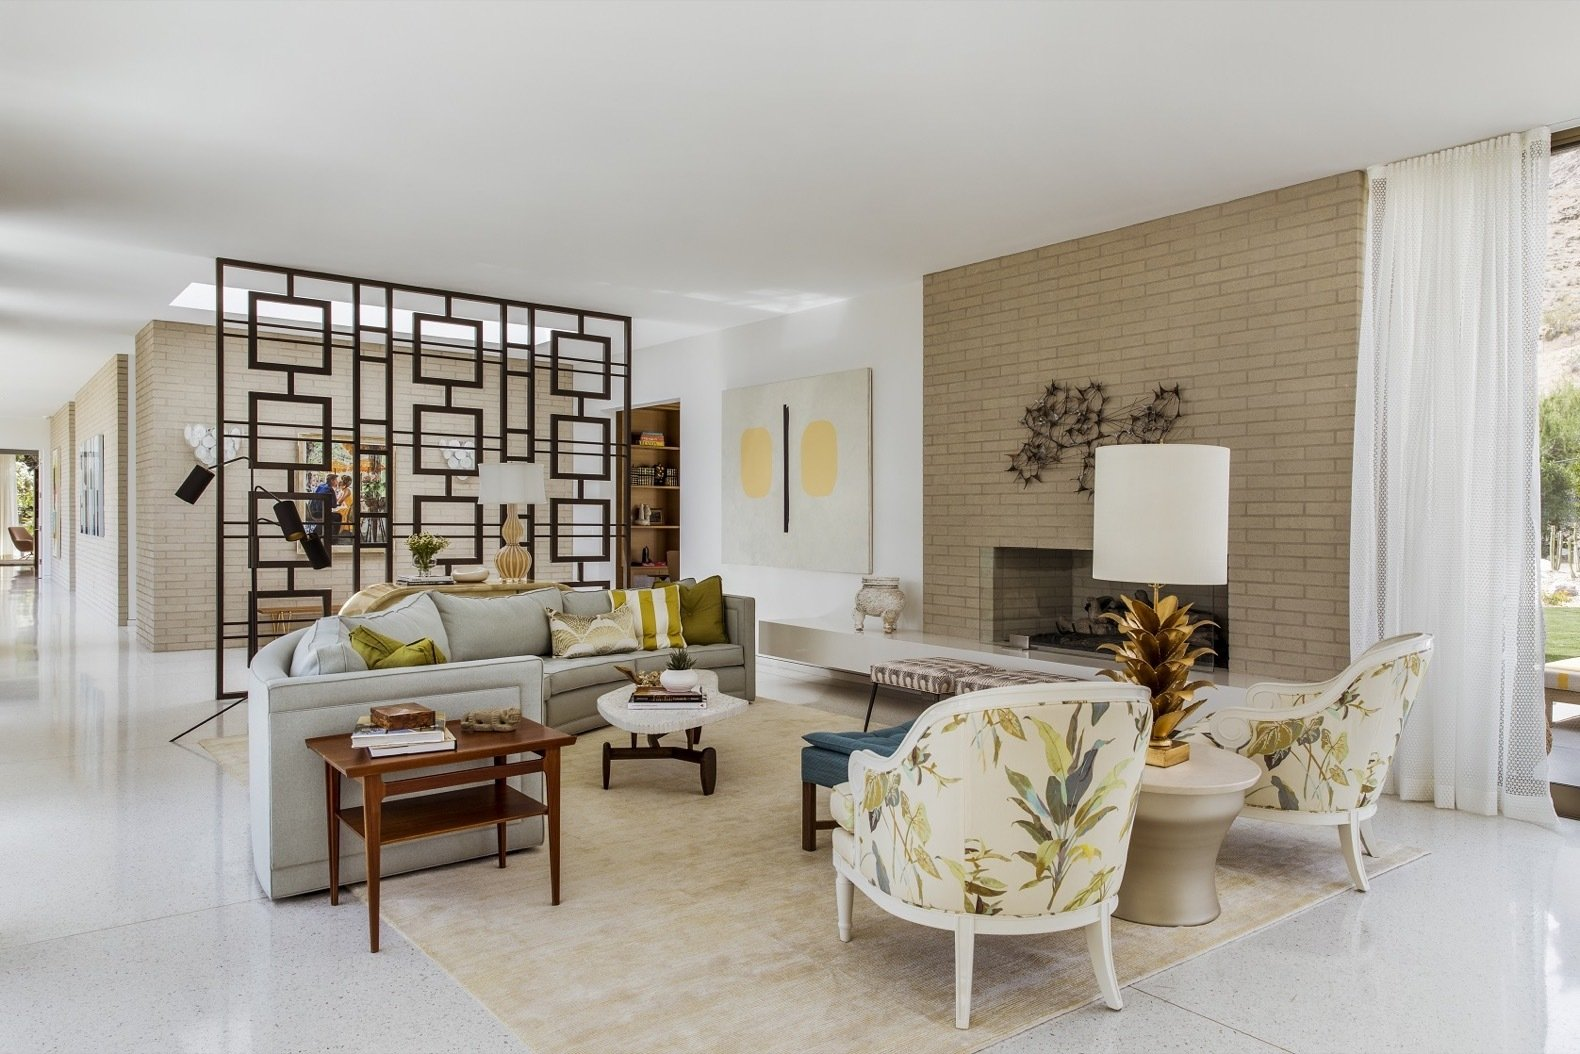 Living Room, Terrazzo Floor, Chair, Table Lighting, Coffee Tables, Gas Burning Fireplace, and Sofa The living room features a double-sided gas fireplace, a pair of Jan Showers chairs, a 1stdibs coffee table, a custom Kush Rugs rug, and a Look Modern teak side table.